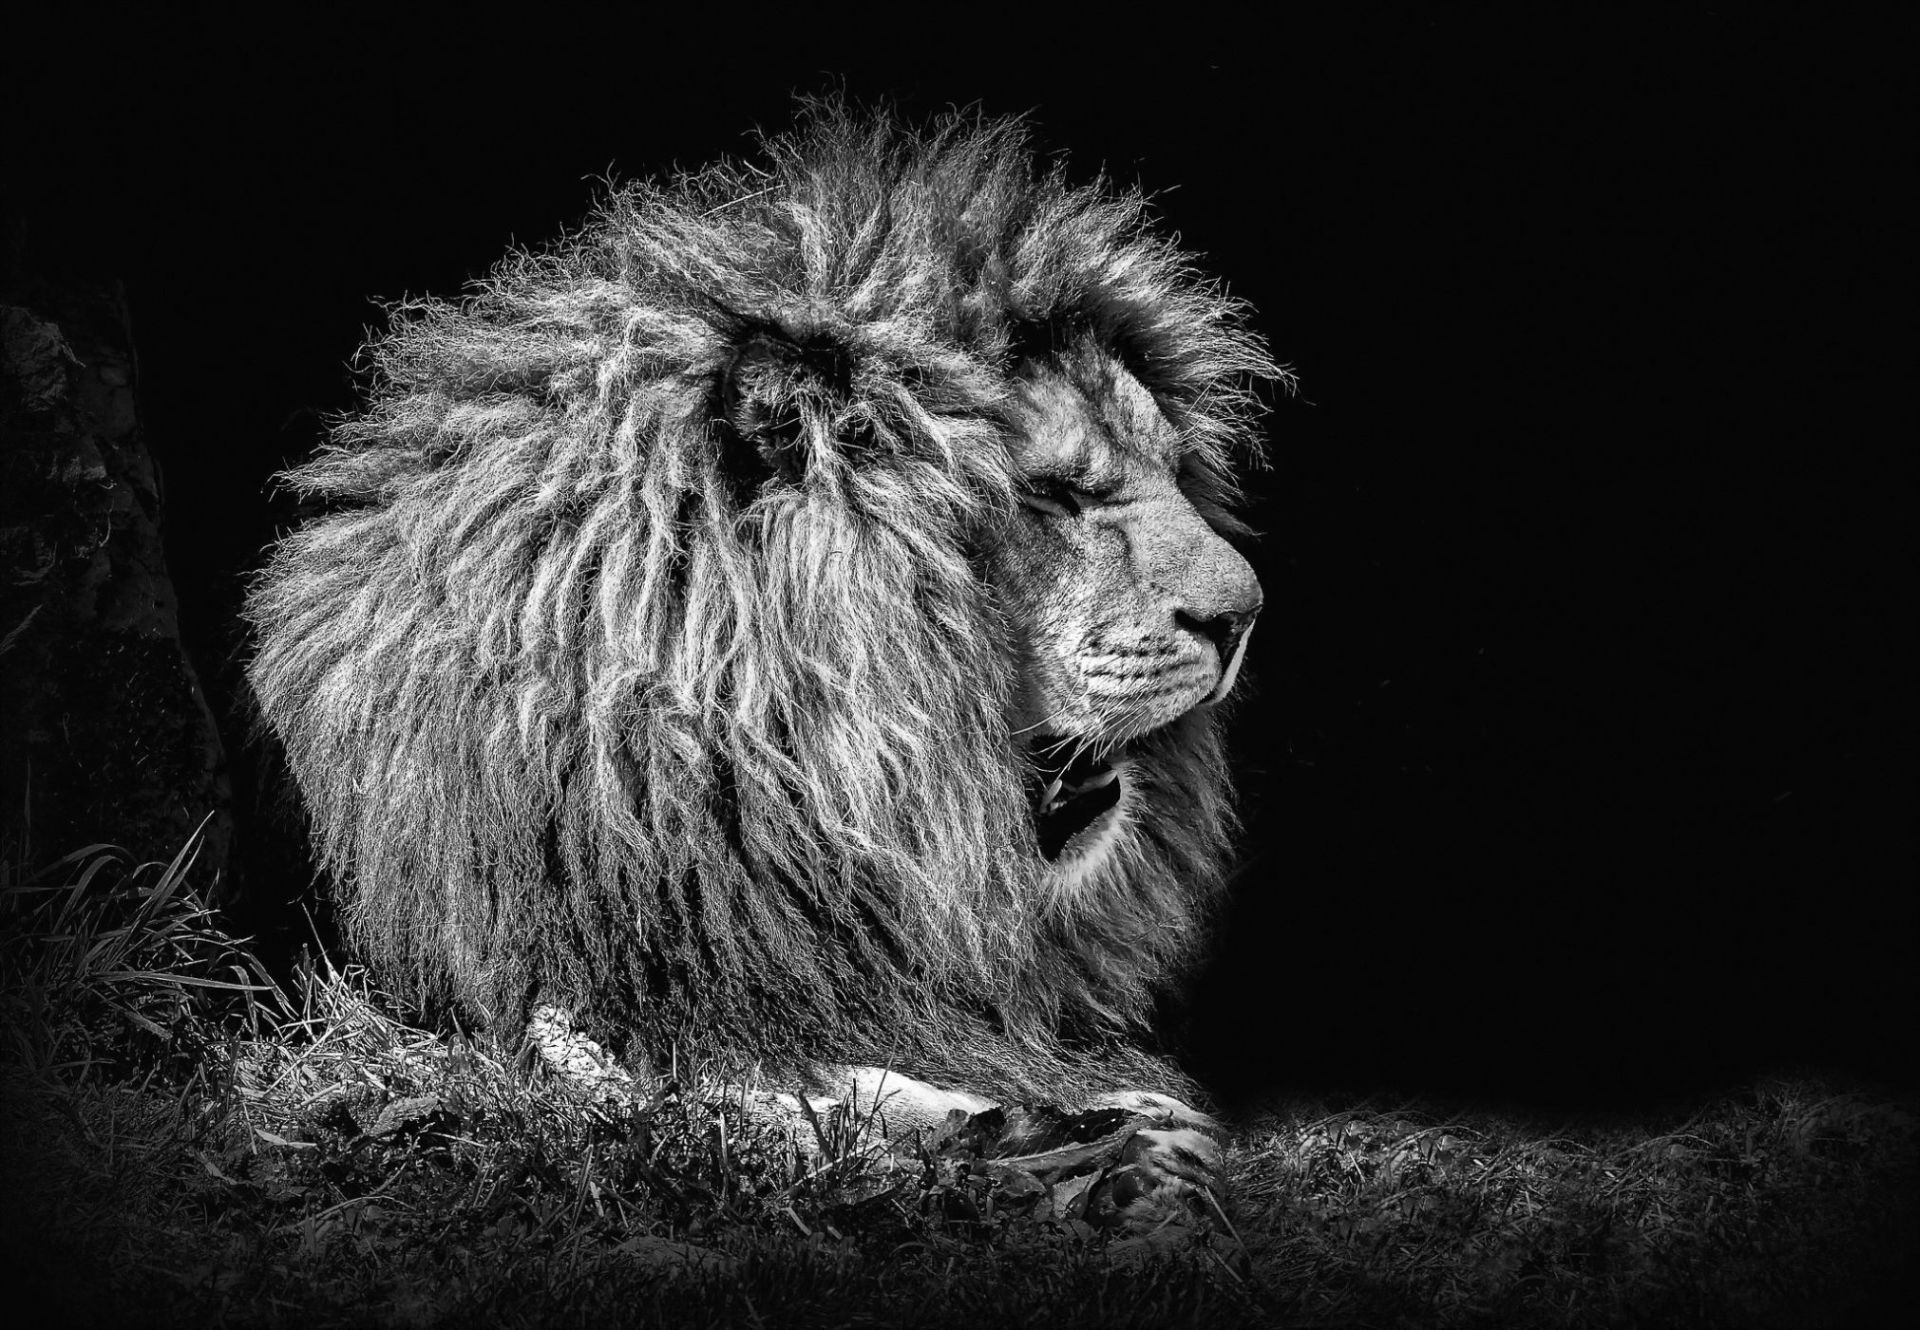 Lion Black And White Animal Picture